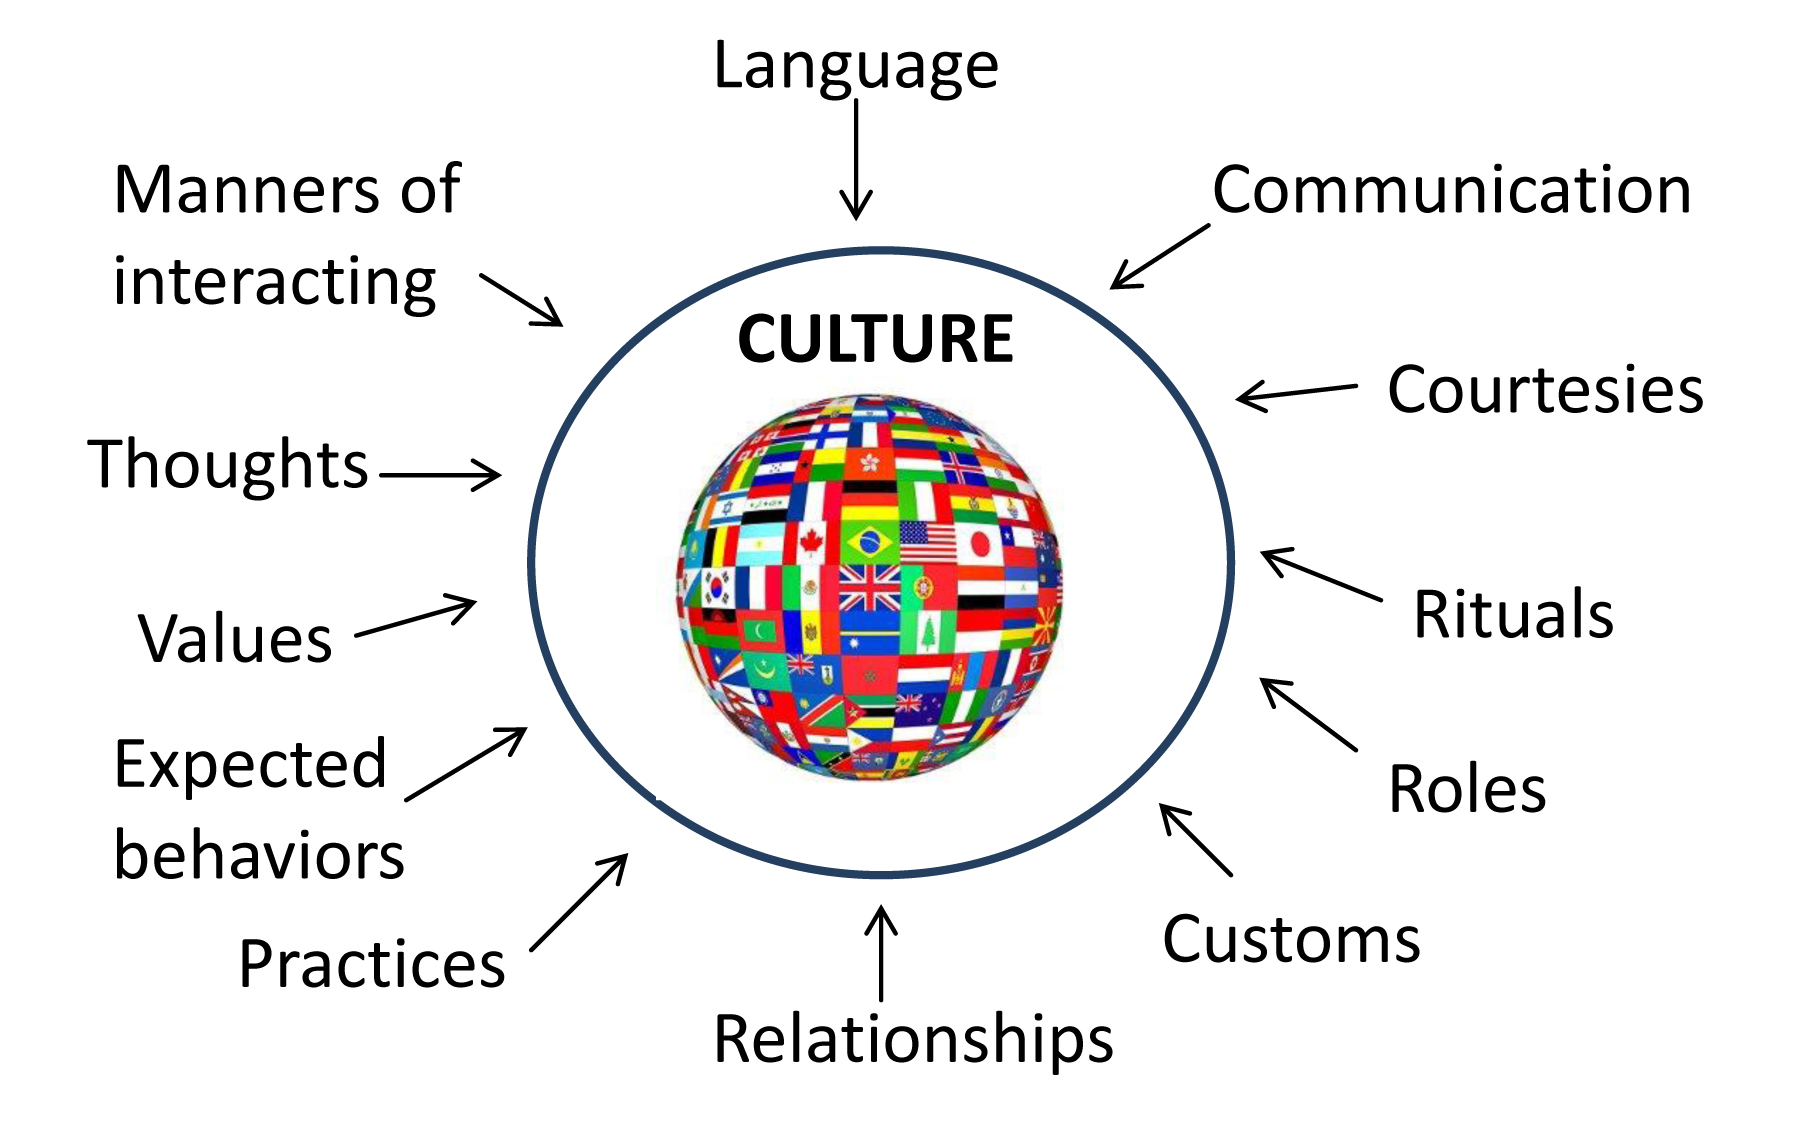 cultural-and-linguistic-competence-in-patient-care_sushma-sharma-1.jpg